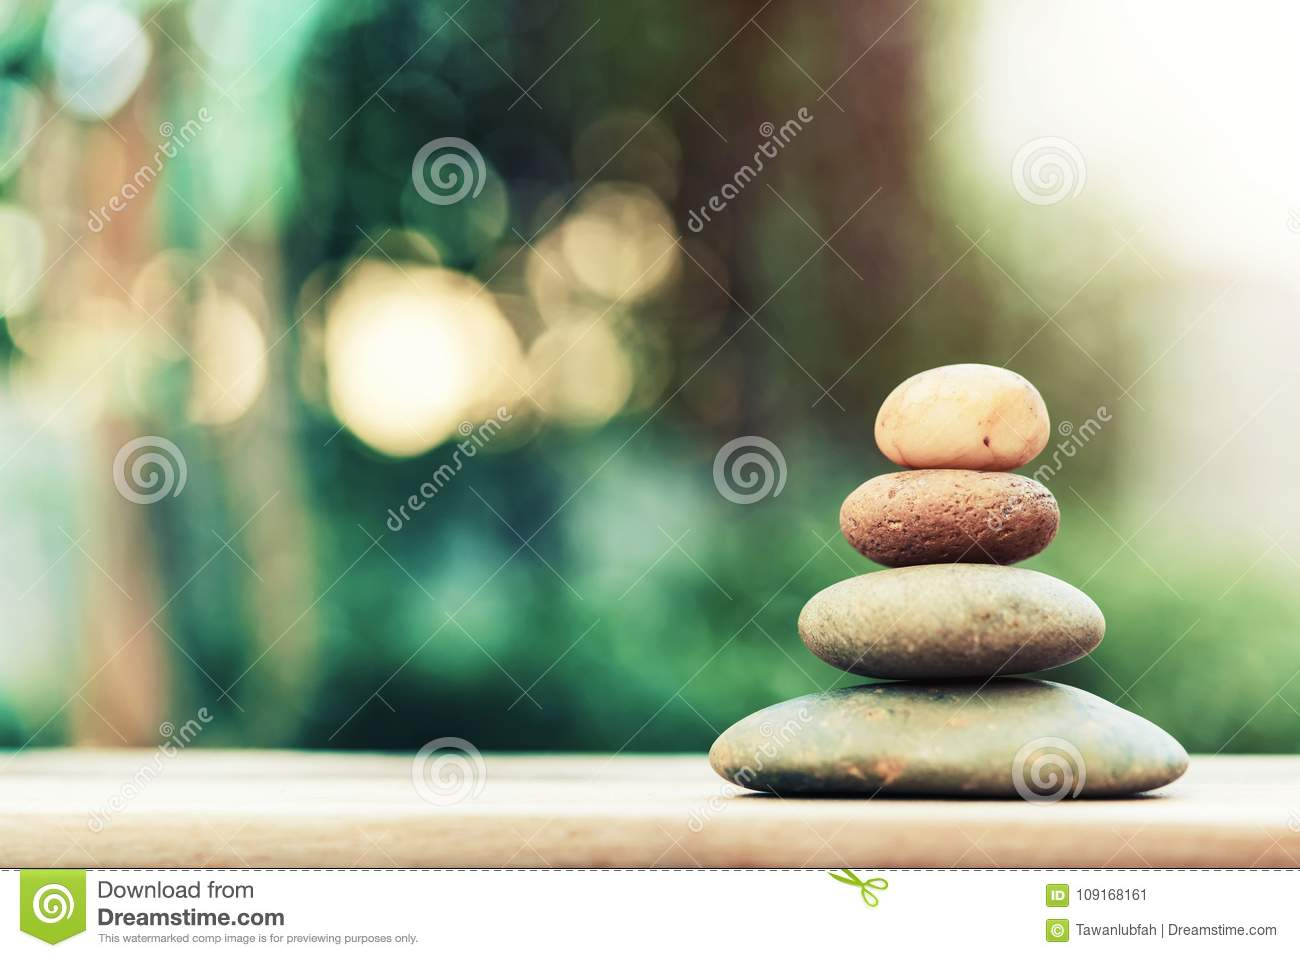 Stack of zen stones on ground with blurred nature background.